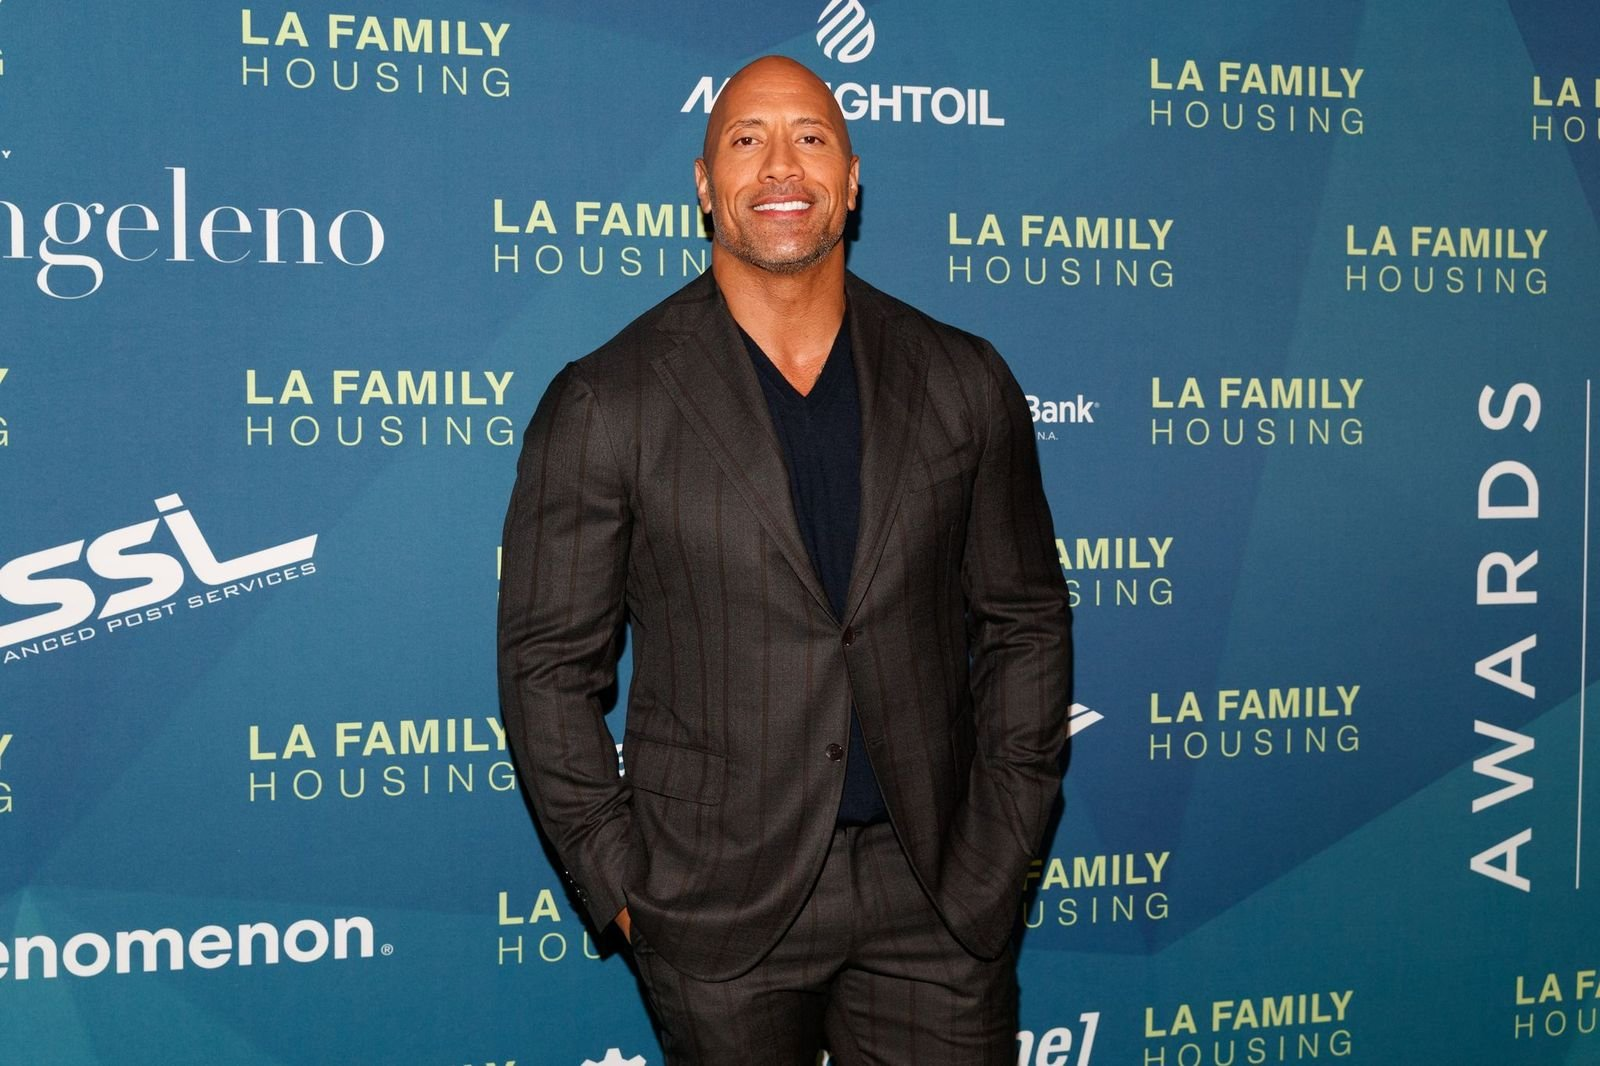 Dwayne Johnson at the LAFH Awards at The Lot in West Hollywood on April 5, 2018 | Photo: Getty Images